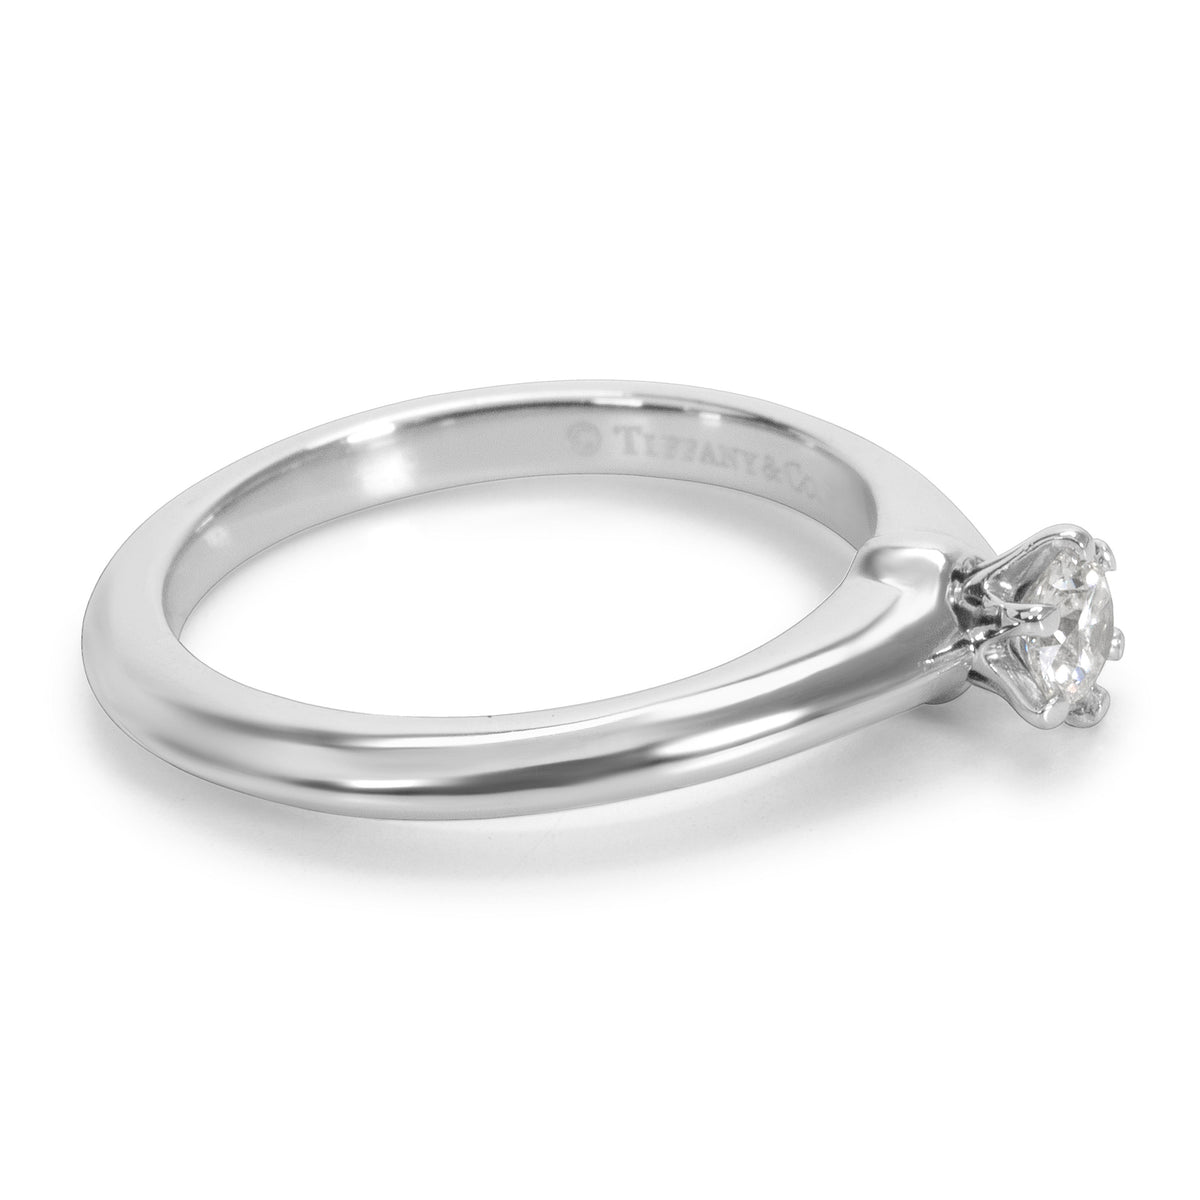 Tiffany & Co. Diamond Solitaire Engagement Ring in Platinum (0.17 CTW)